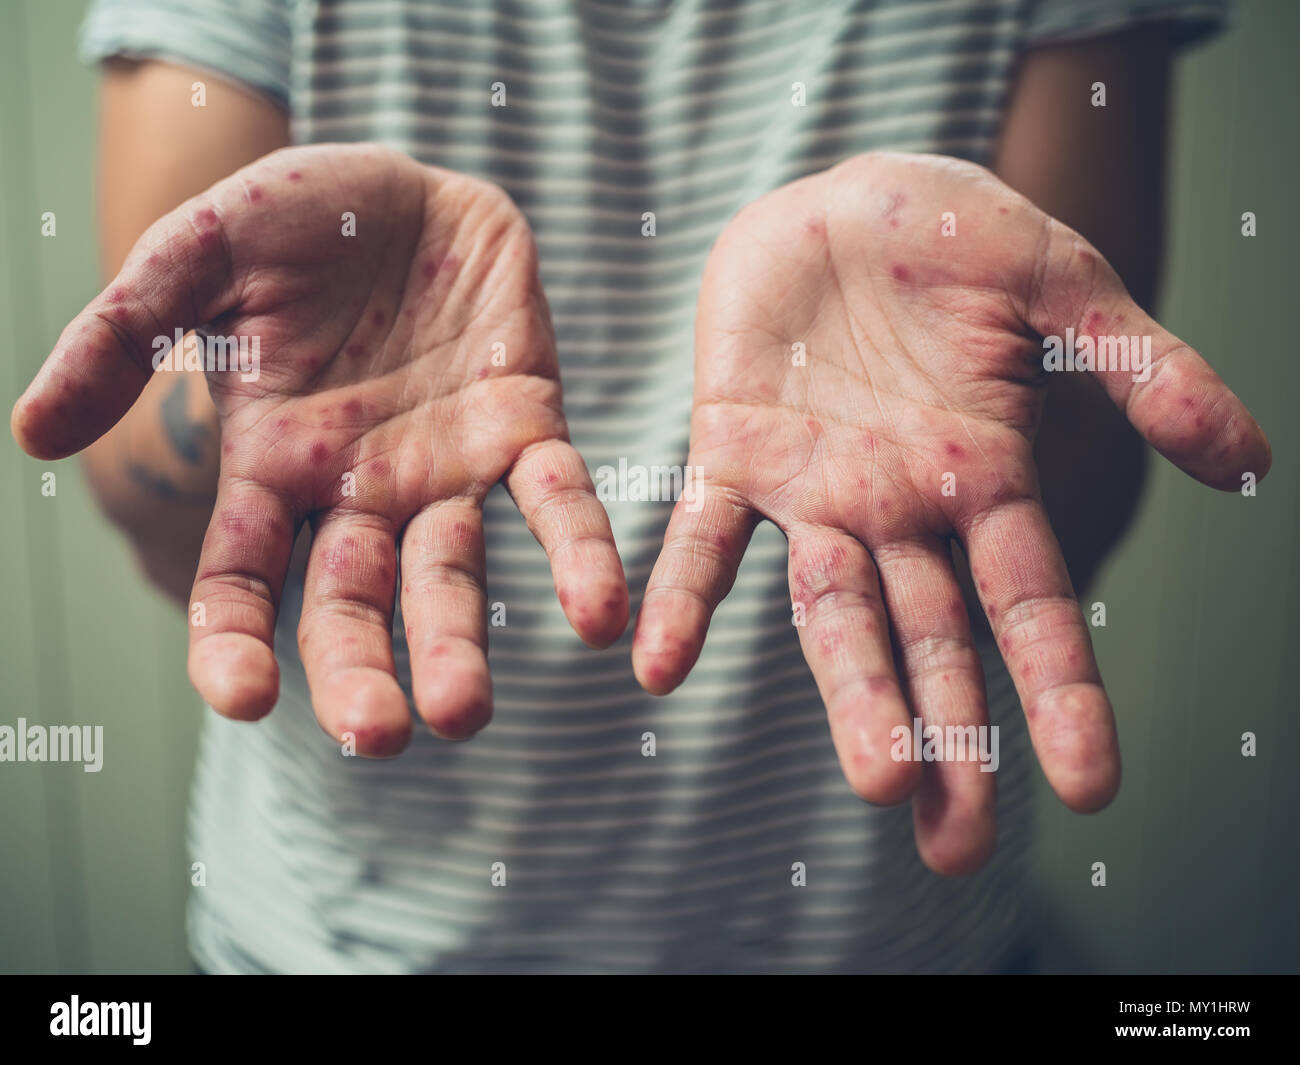 A young man is showing his hands with spots and rash from hand foot and mouth disease - Stock Image